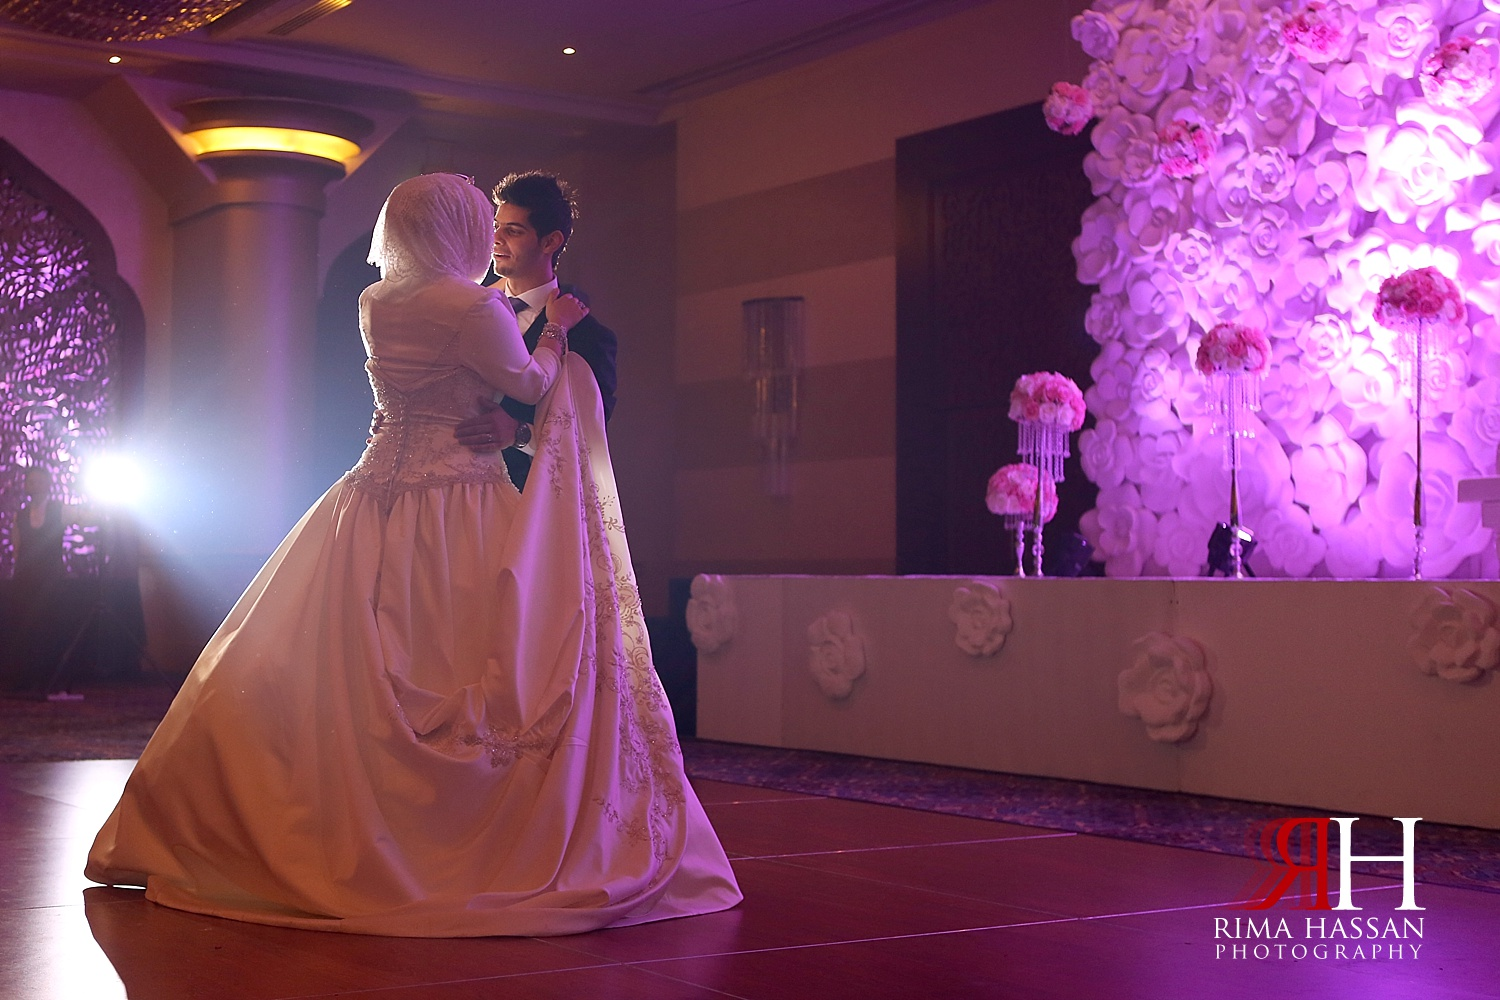 Wedding in Crowne Plaza, Dubai – Ali & Maram